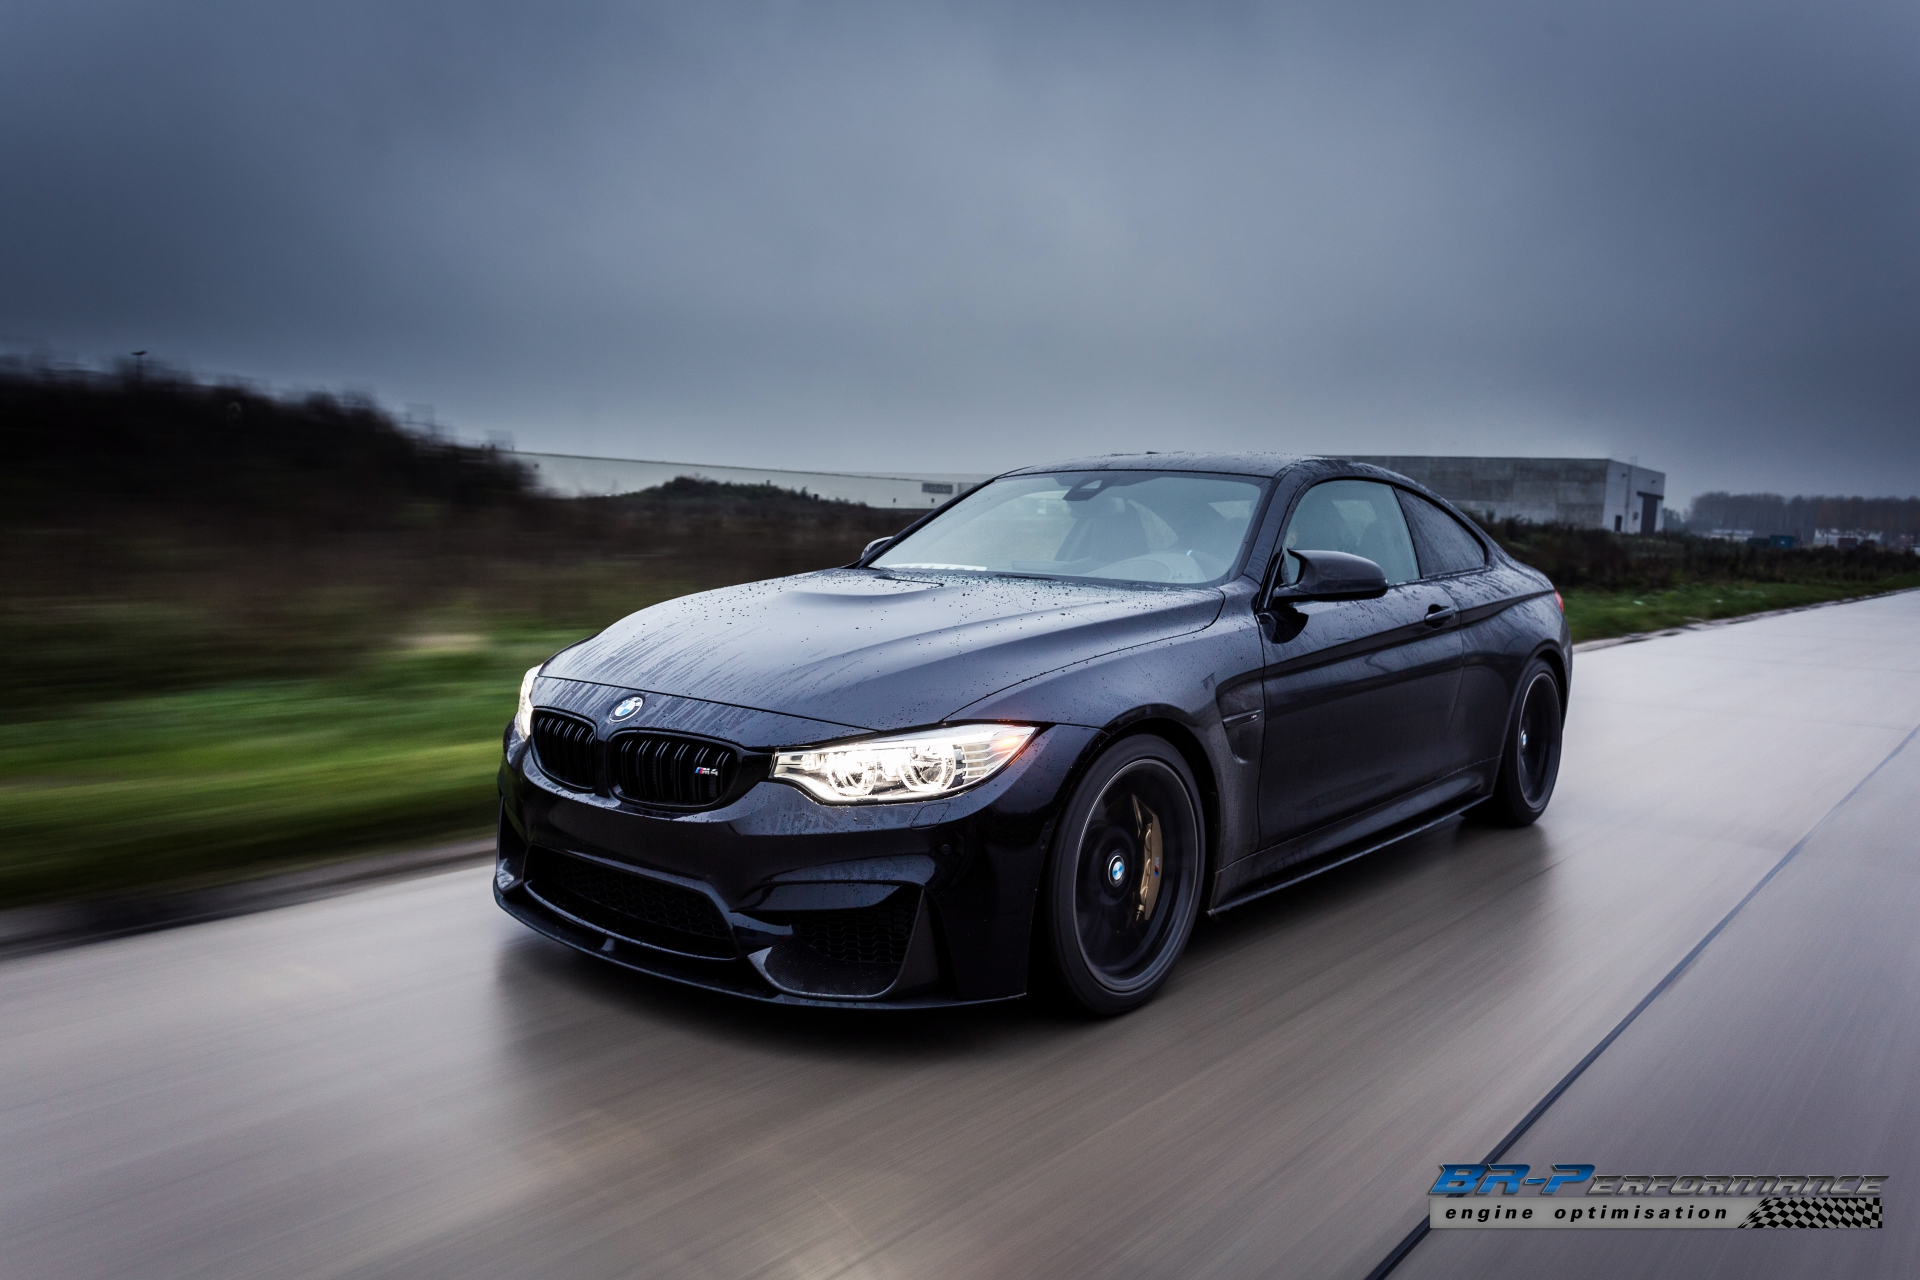 Azurite Black BMW M4 from BR-Performance Stole Our Soul ...